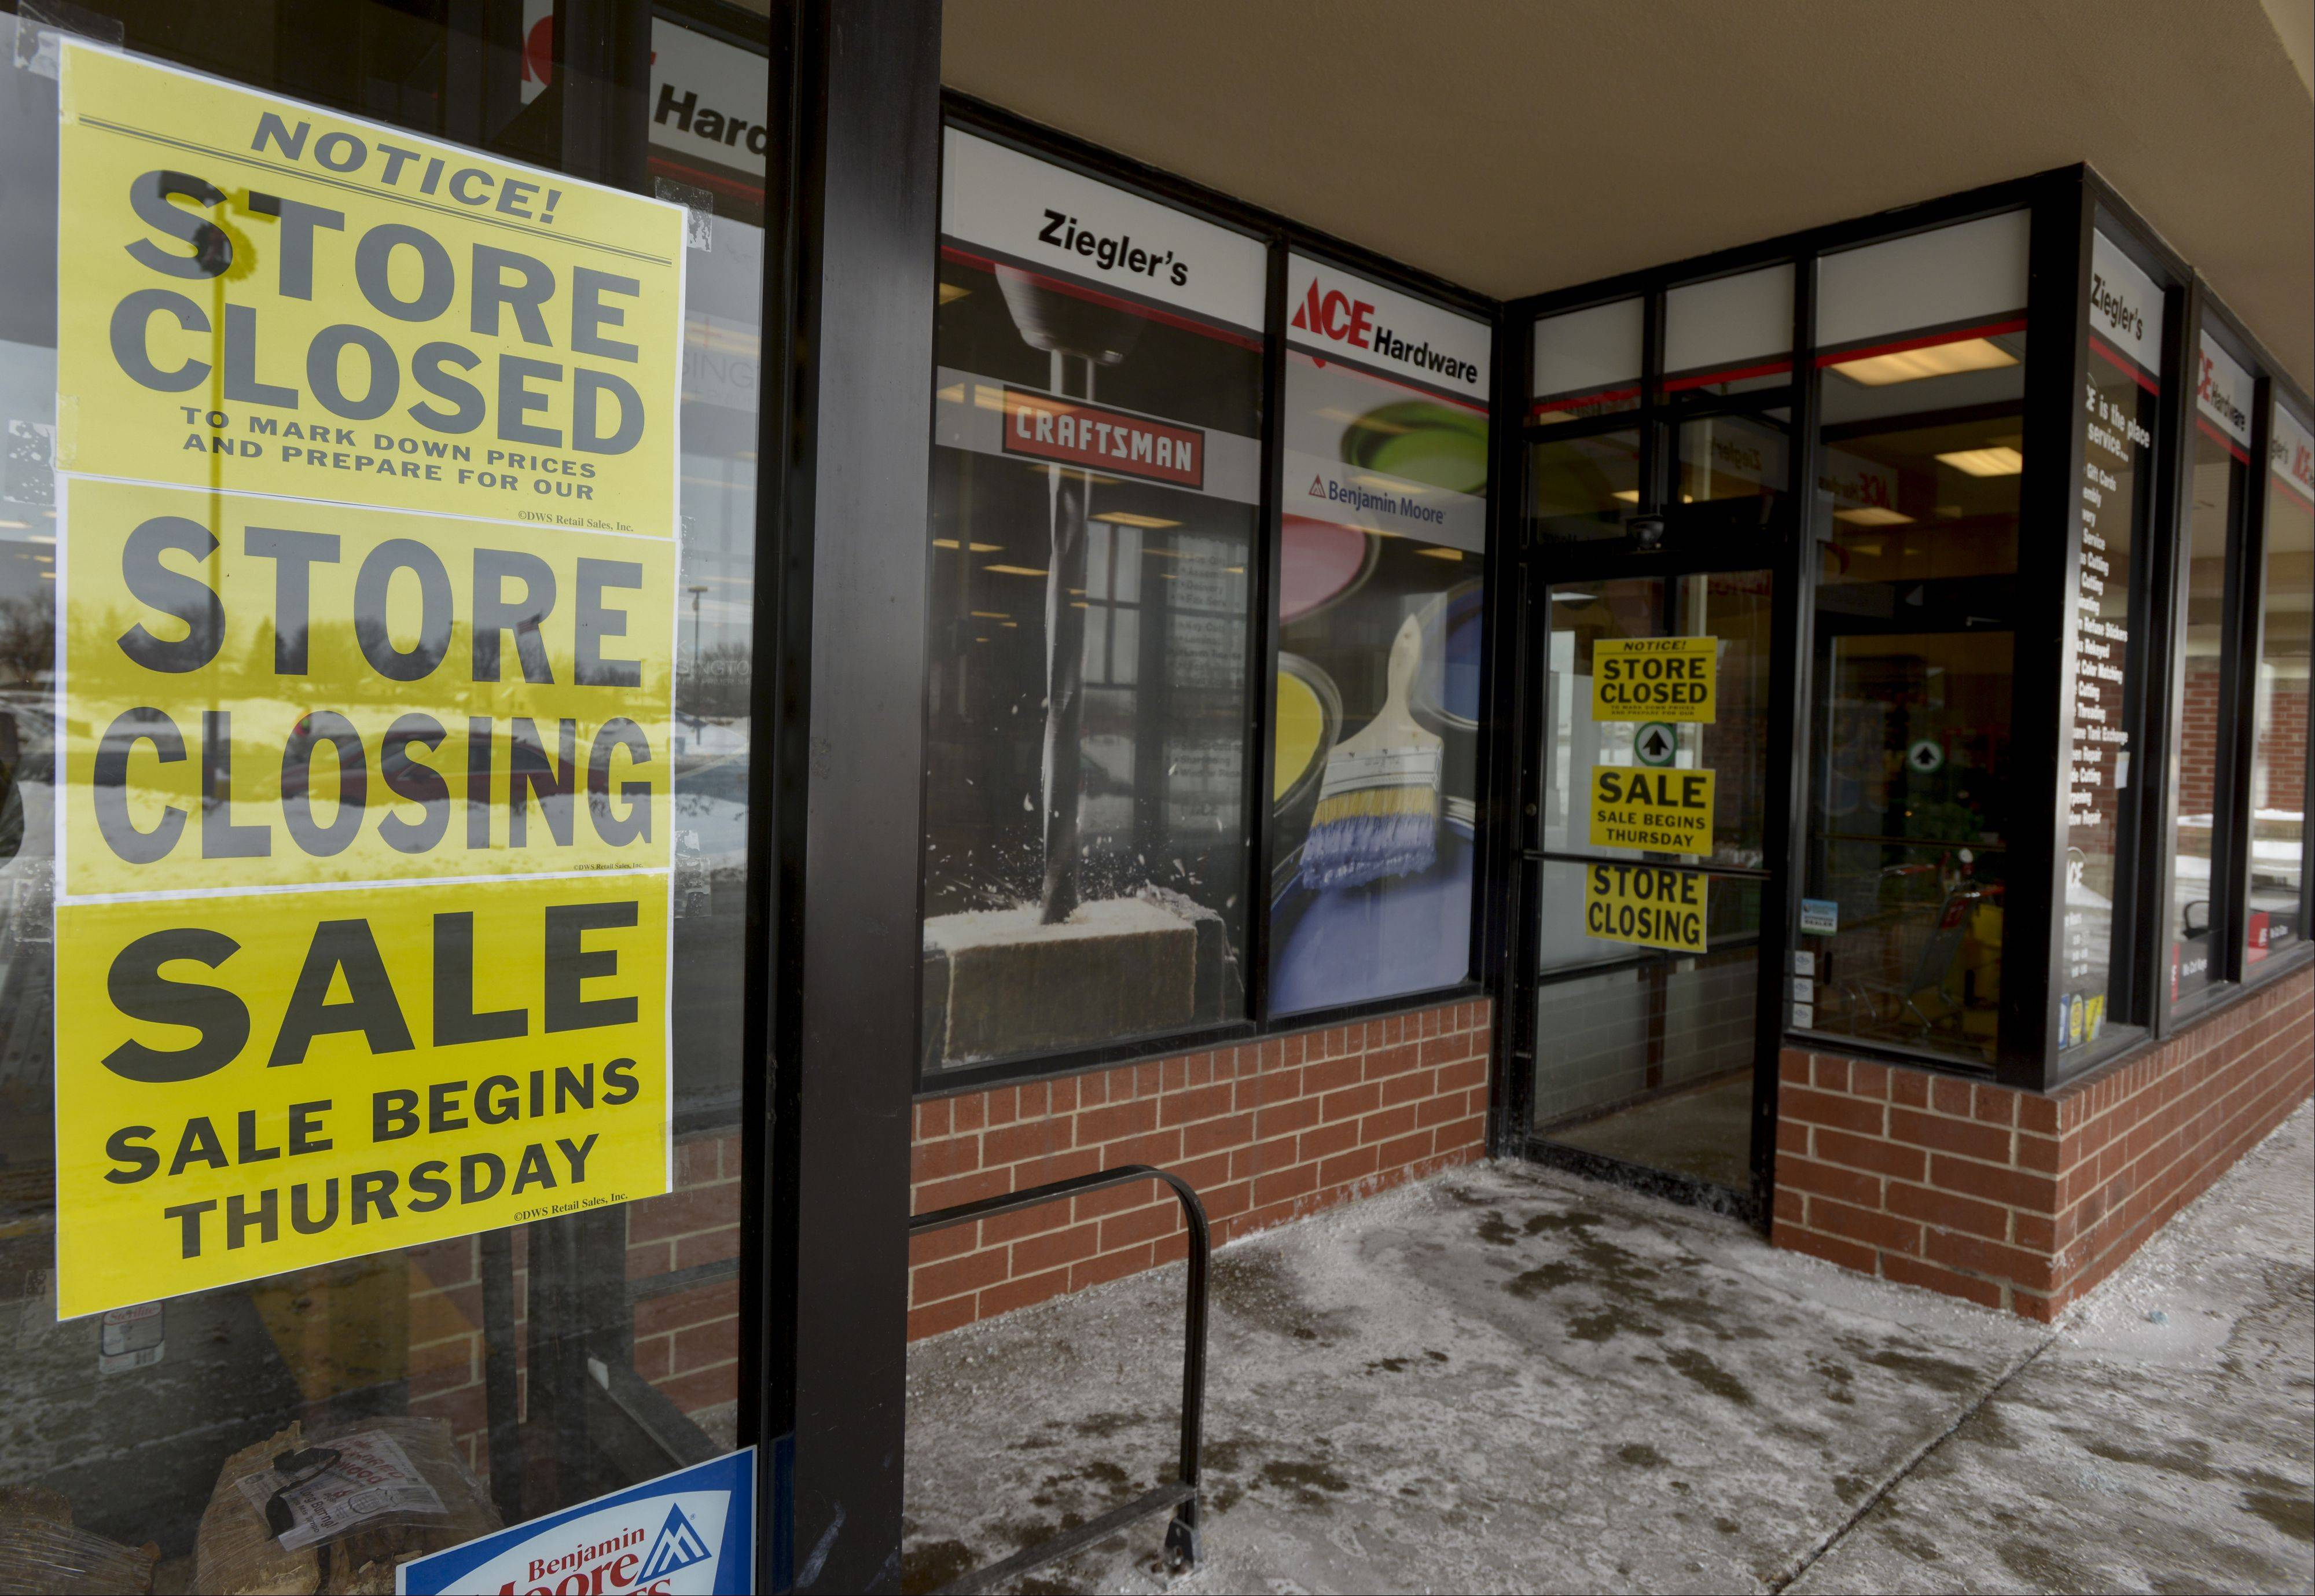 Ziegler's Ace Hardware in Carol Stream will conduct a liquidation sale for the next six to eight weeks and close for good in mid-March.